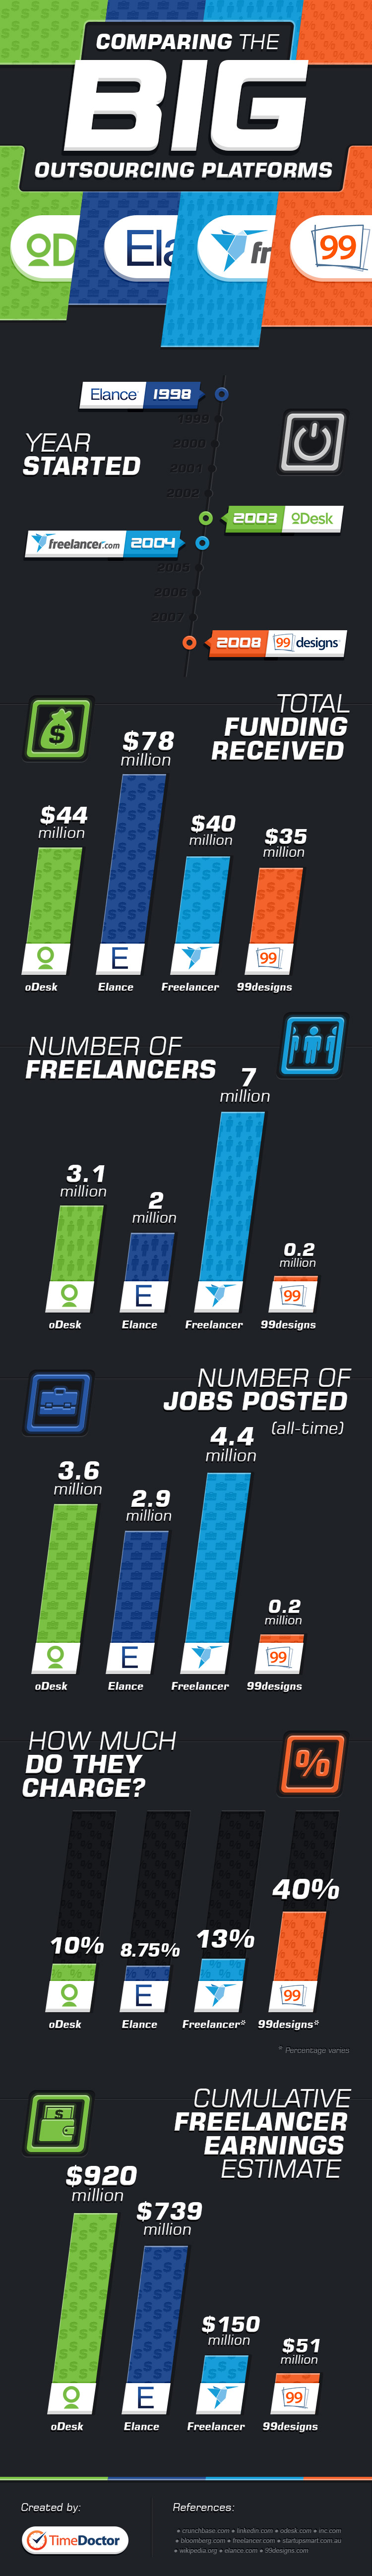 Browseworthy: The Latest News on Outsourcing Resources [INFOGRAPHIC]